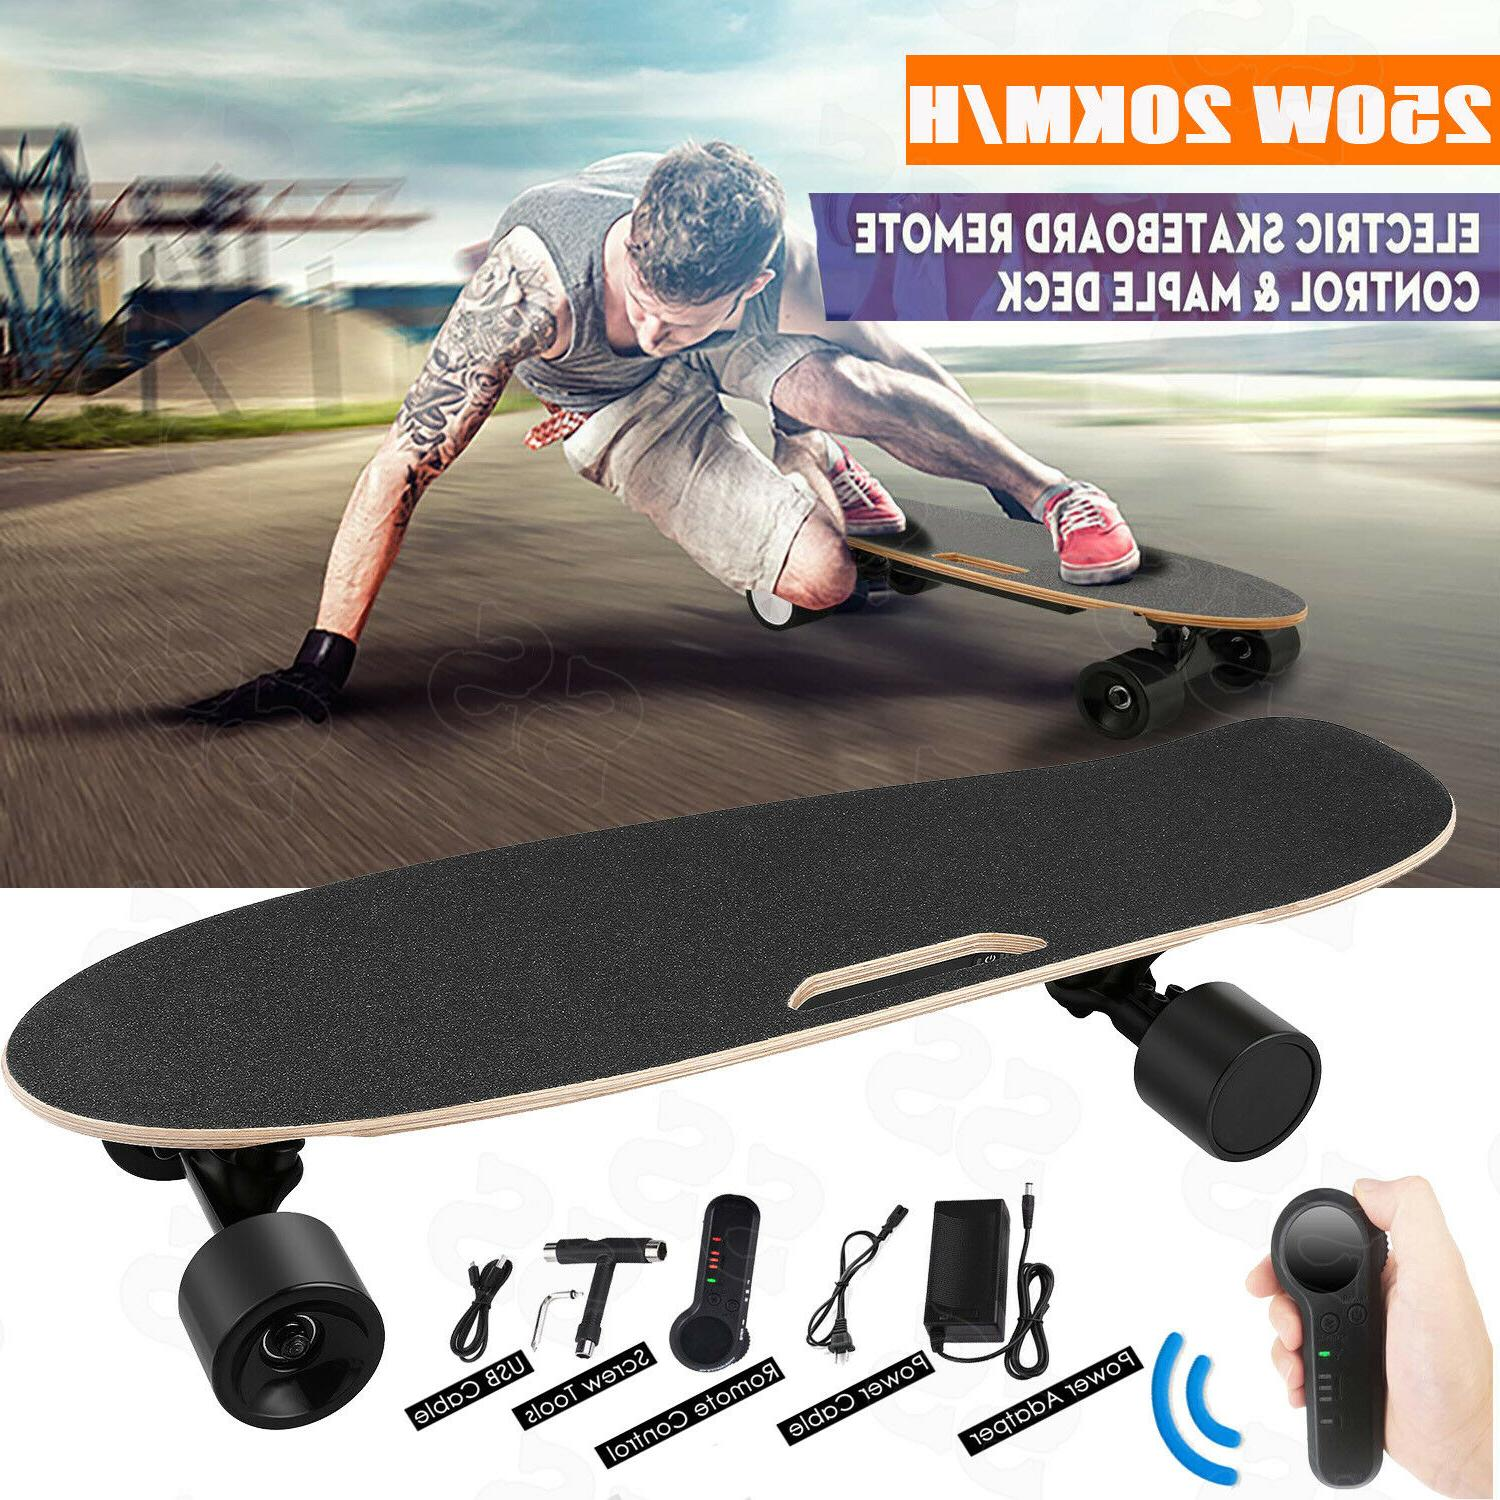 ANCHEER Electric Skateboard Motor Wireless Control